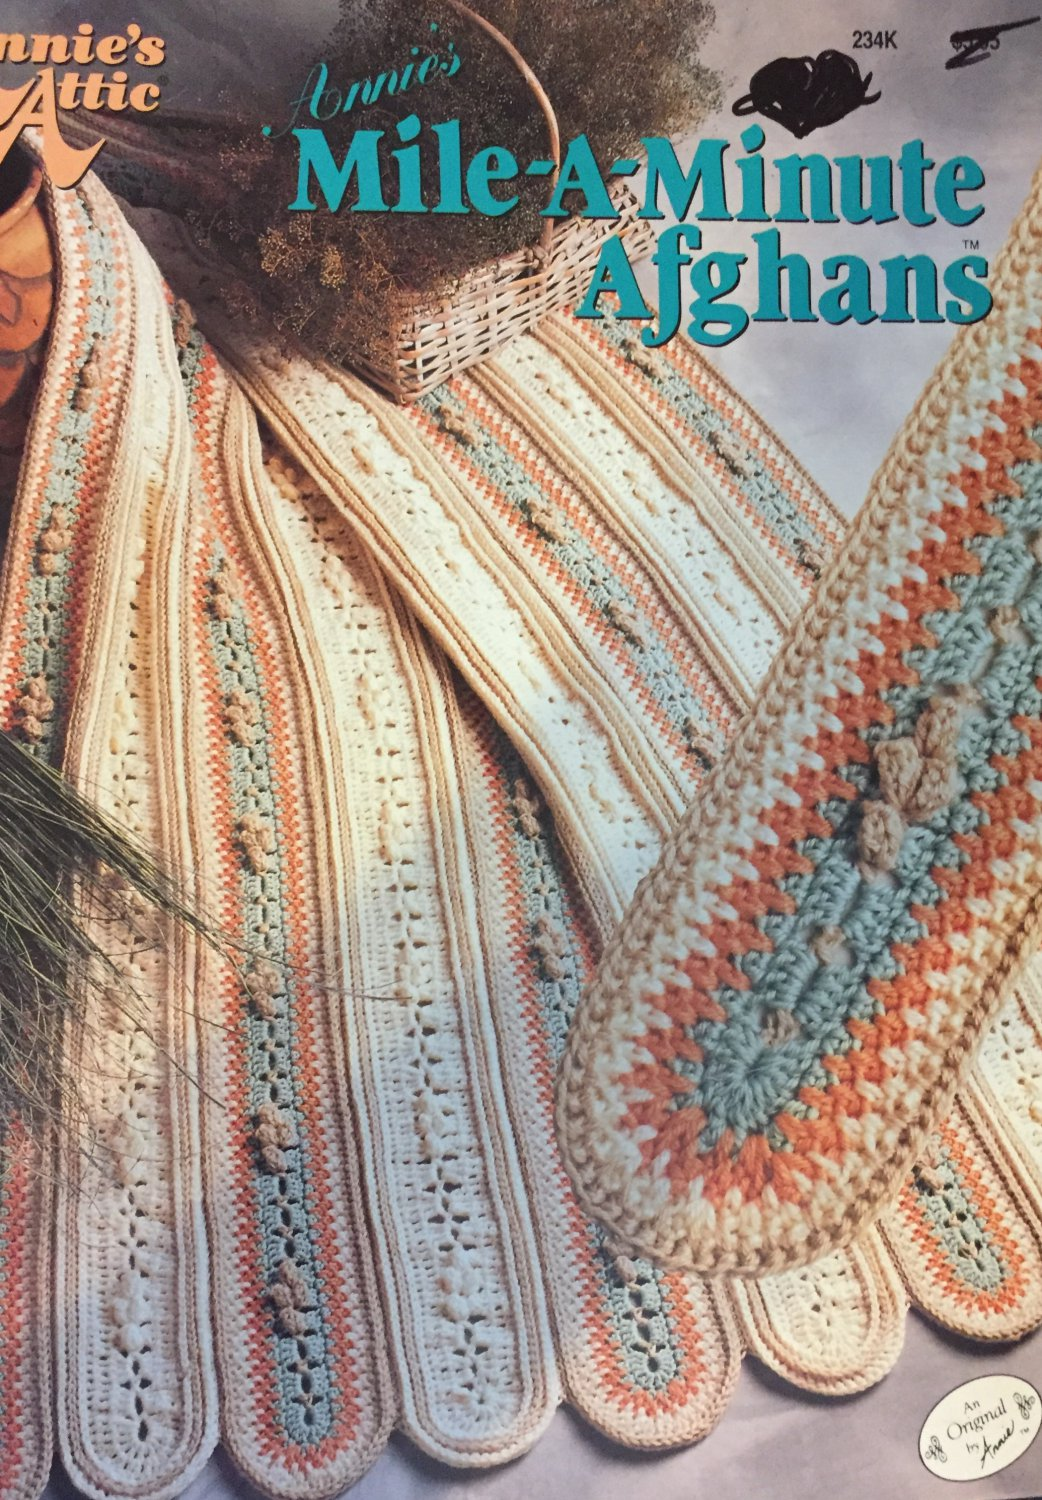 Annie's Attic Mile-a-minute Afghans Crochet Pattern Booklet  234K